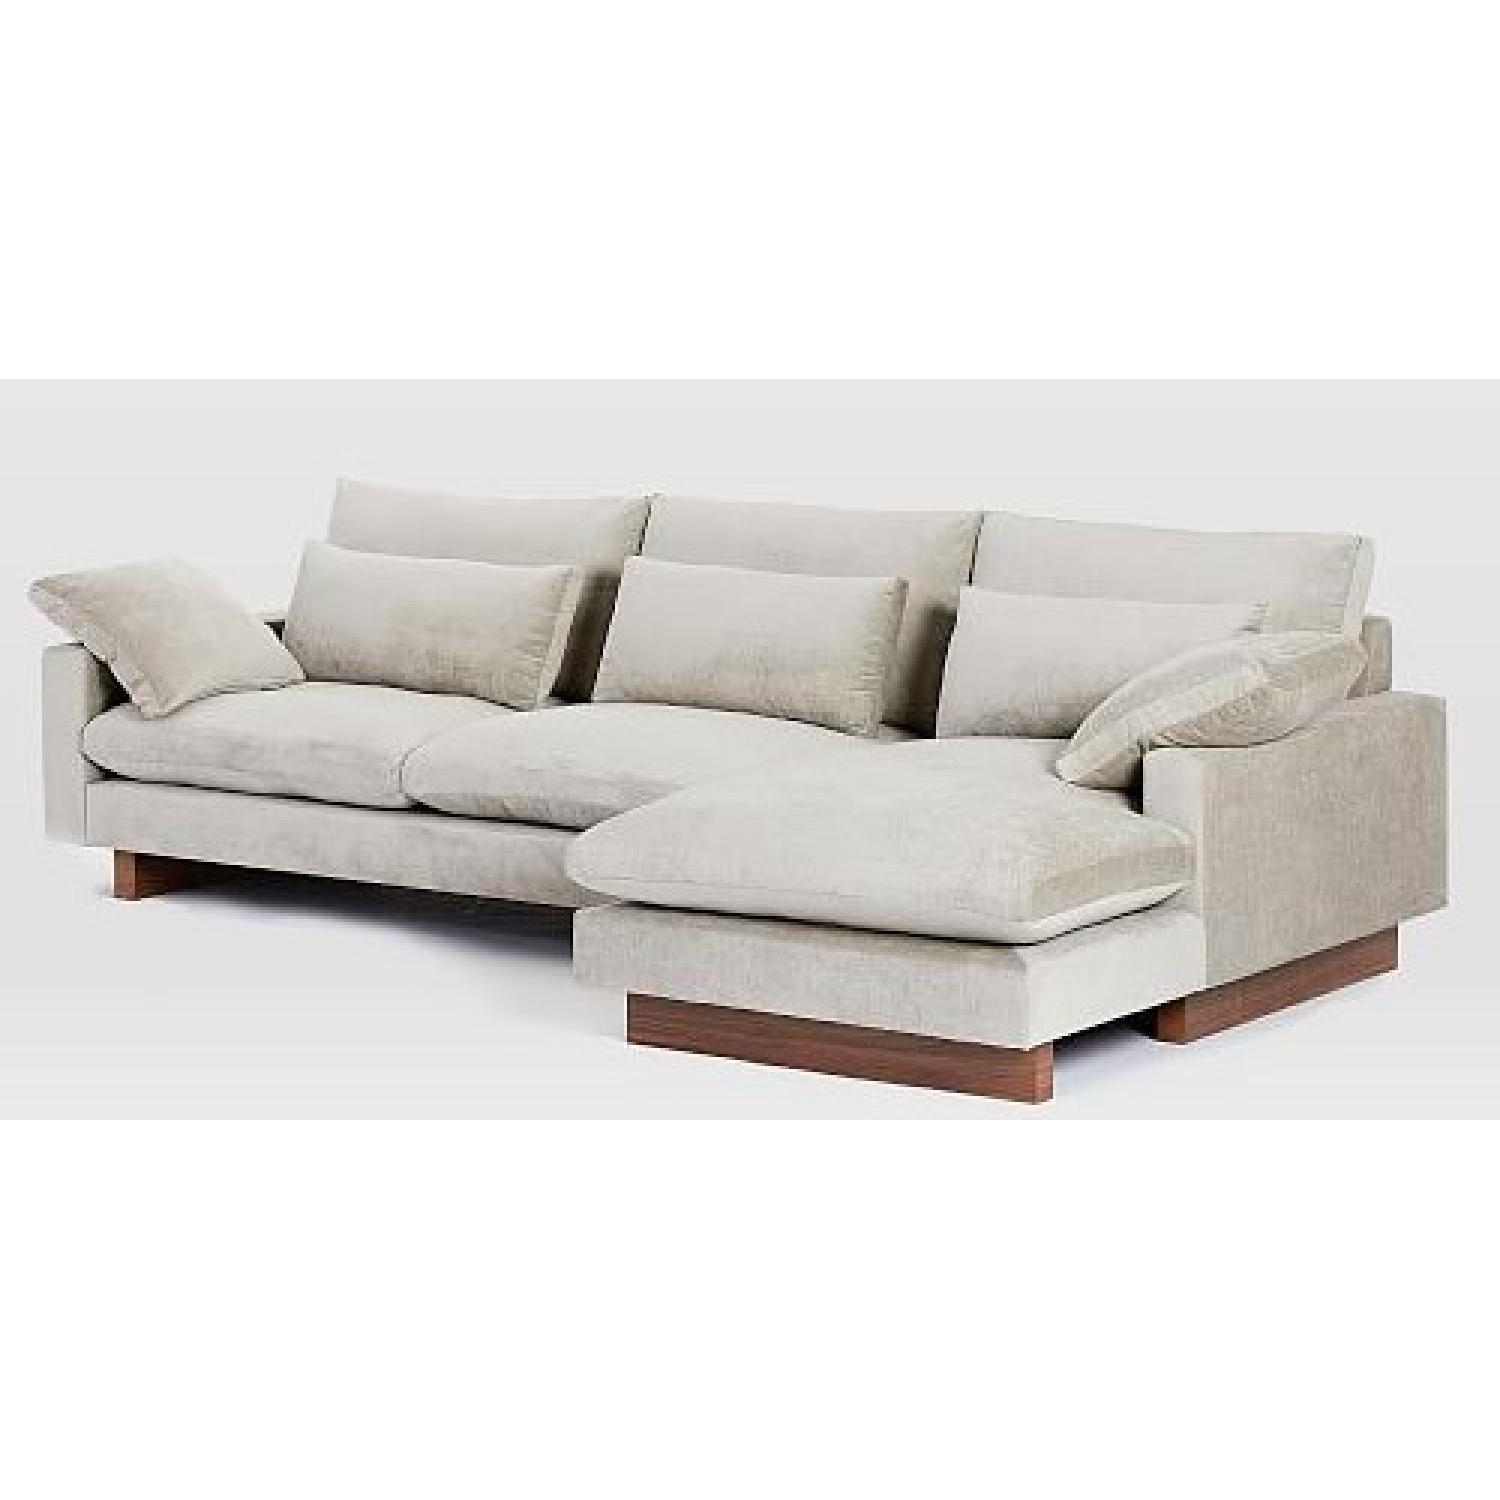 West Elm 2-Piece Large Chaise Sectional Sofa - image-3